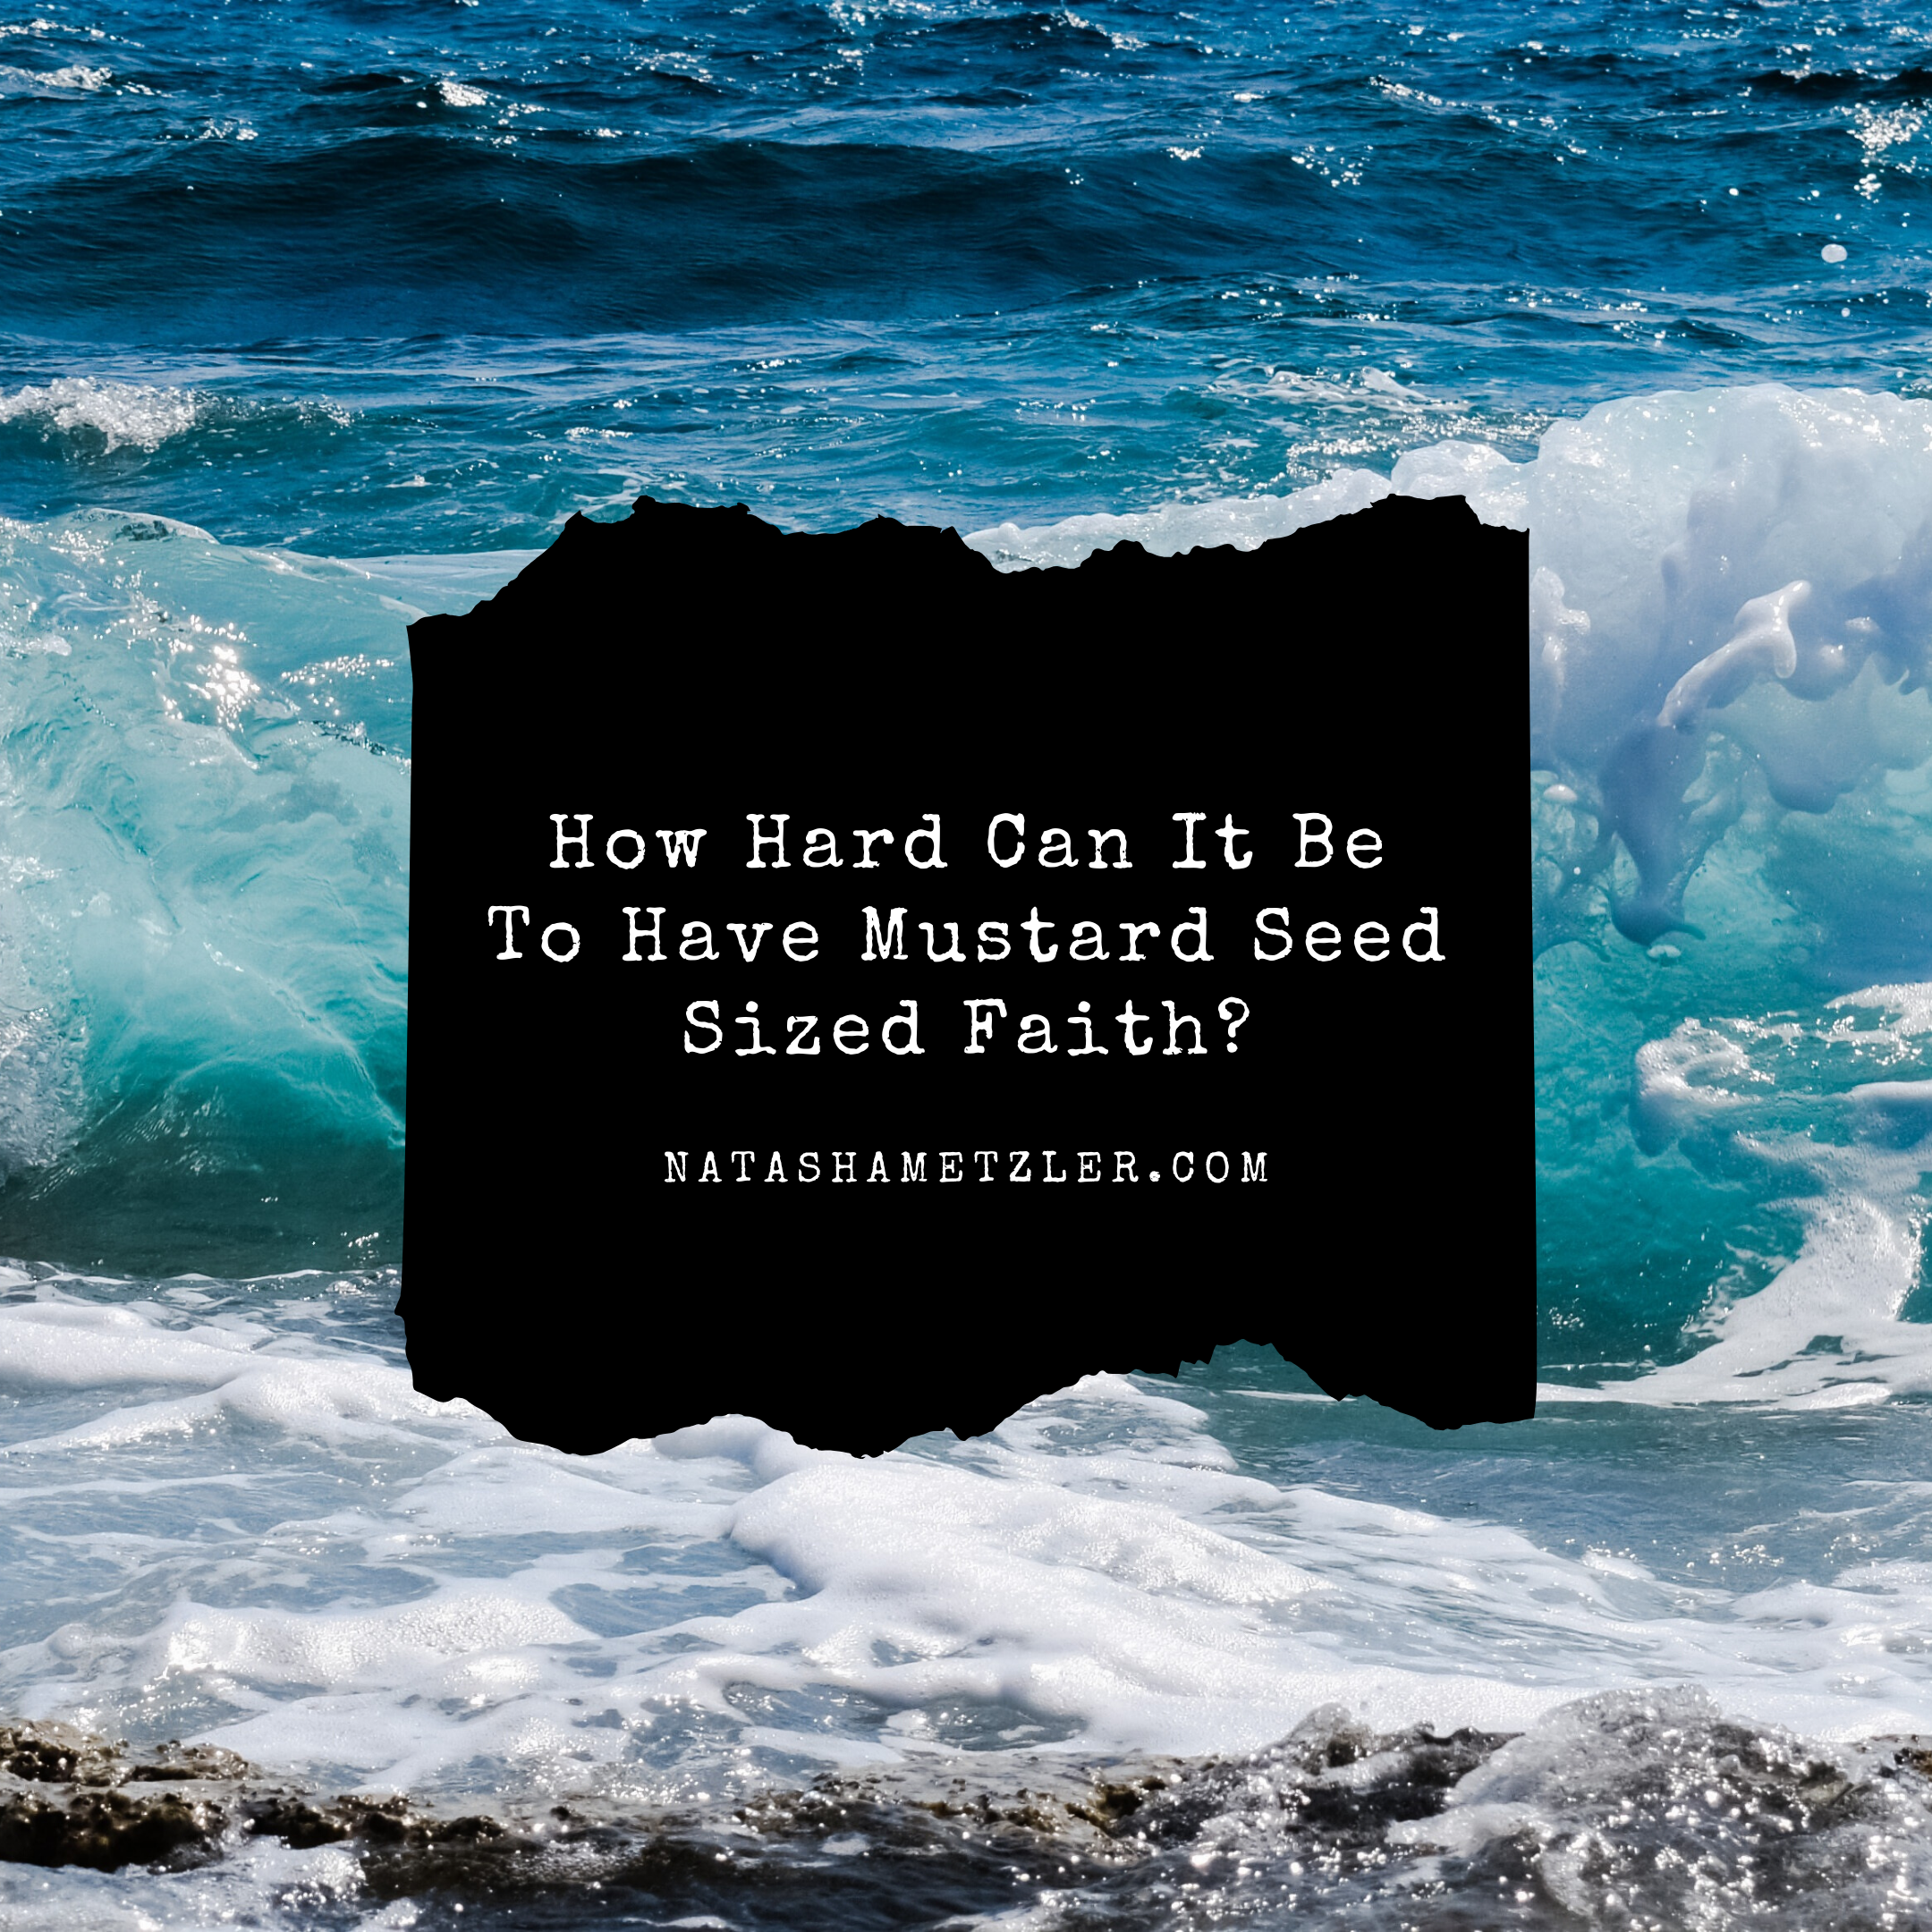 How Hard Can It Be To Have Mustard Seed Sized Faith?